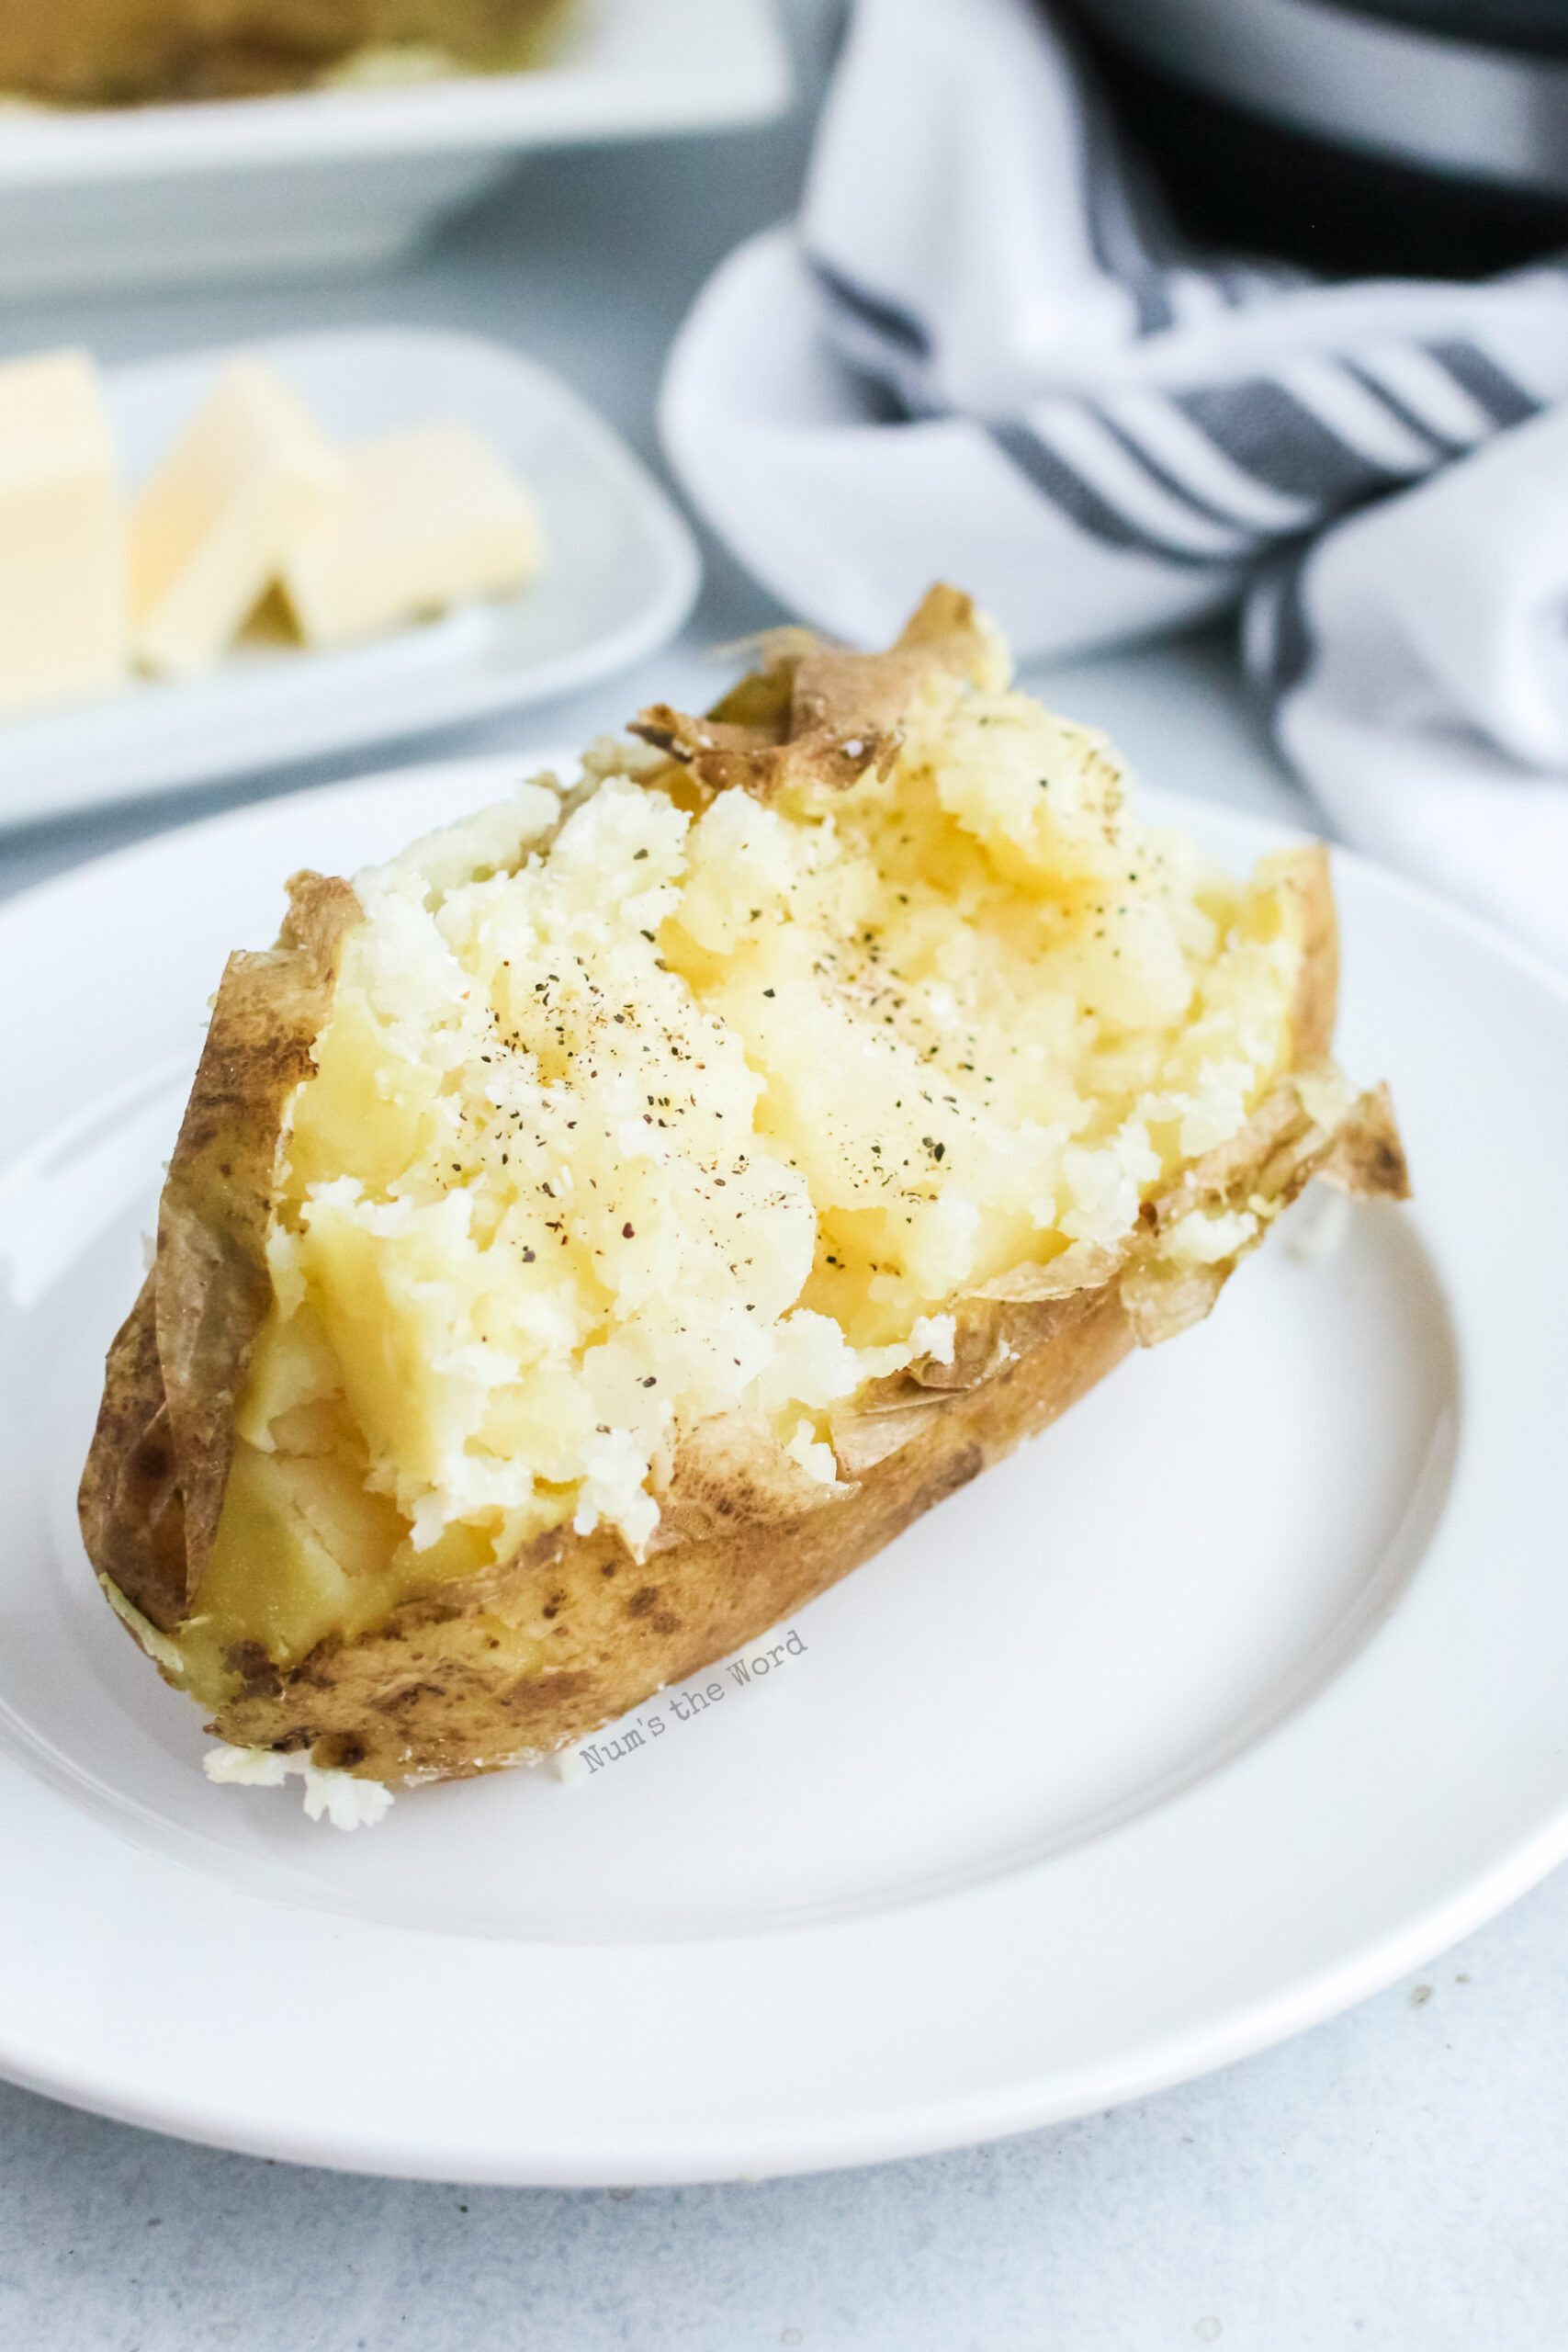 Single baked potato on a plate with salt and pepper